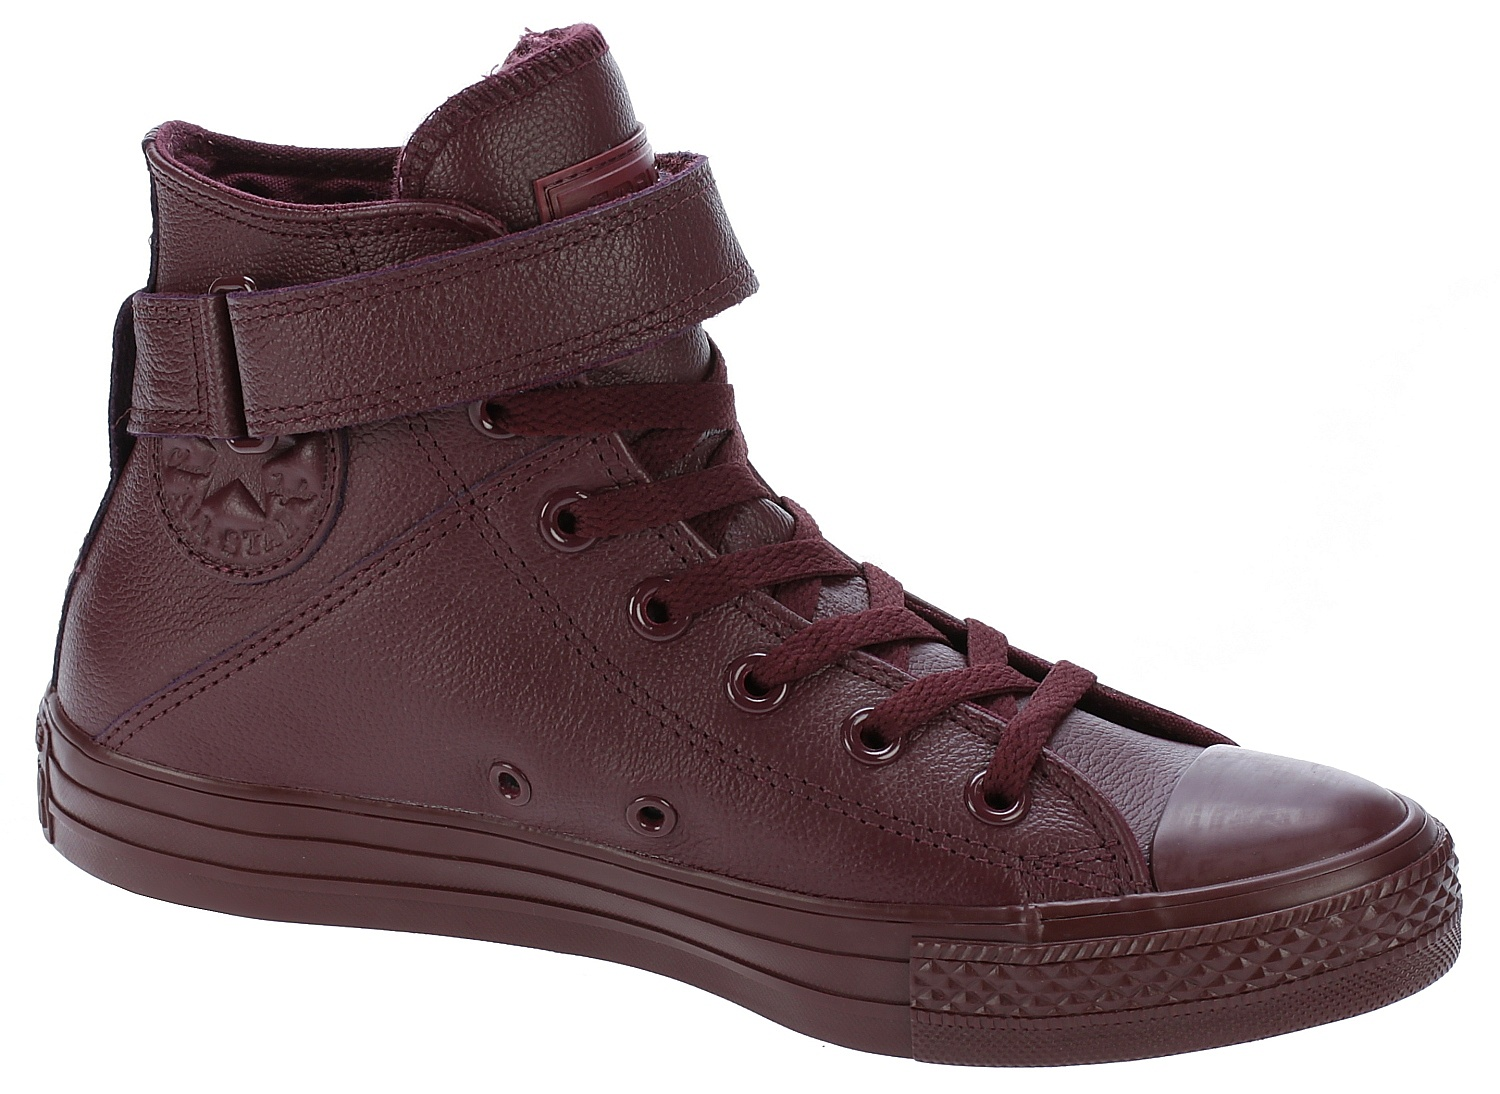 boty Converse Chuck Taylor All Star Brea Leather Hi - 549584 Deep  Bordeaux Deep Bordeaux - Snowboard shop e98b8a1dcee